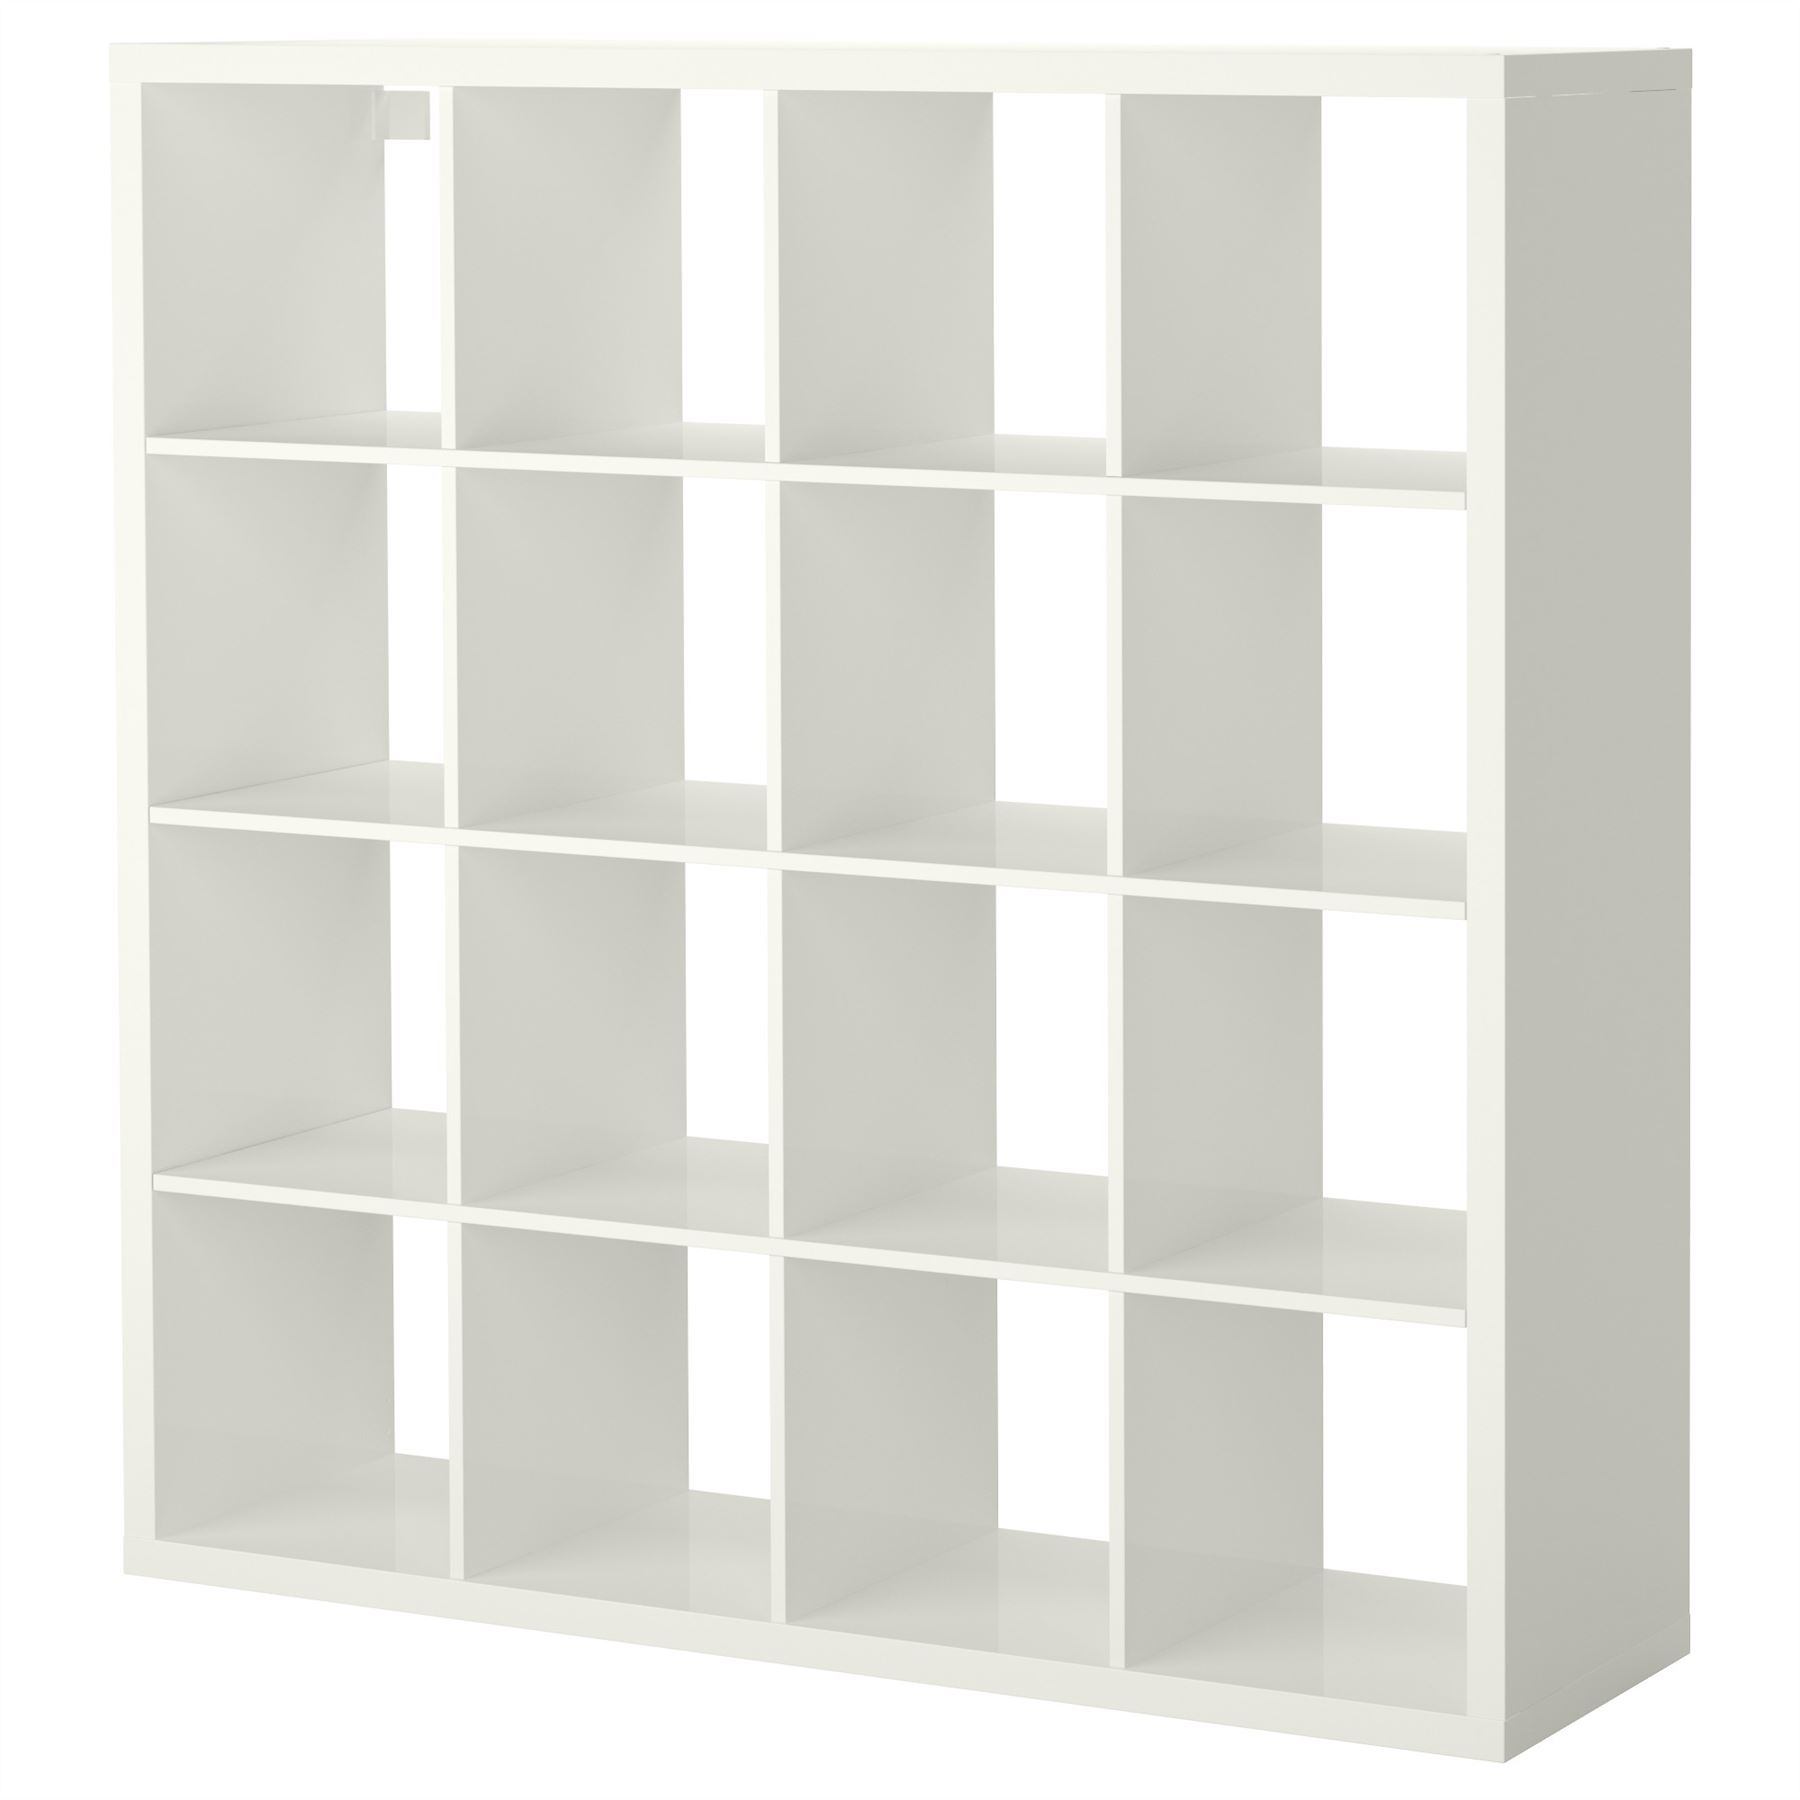 australia genuine bookcases effect www off kmart almosthomedogdaycare uk ikea com popular shelf cube storage birch shelving bookcase unit kallax